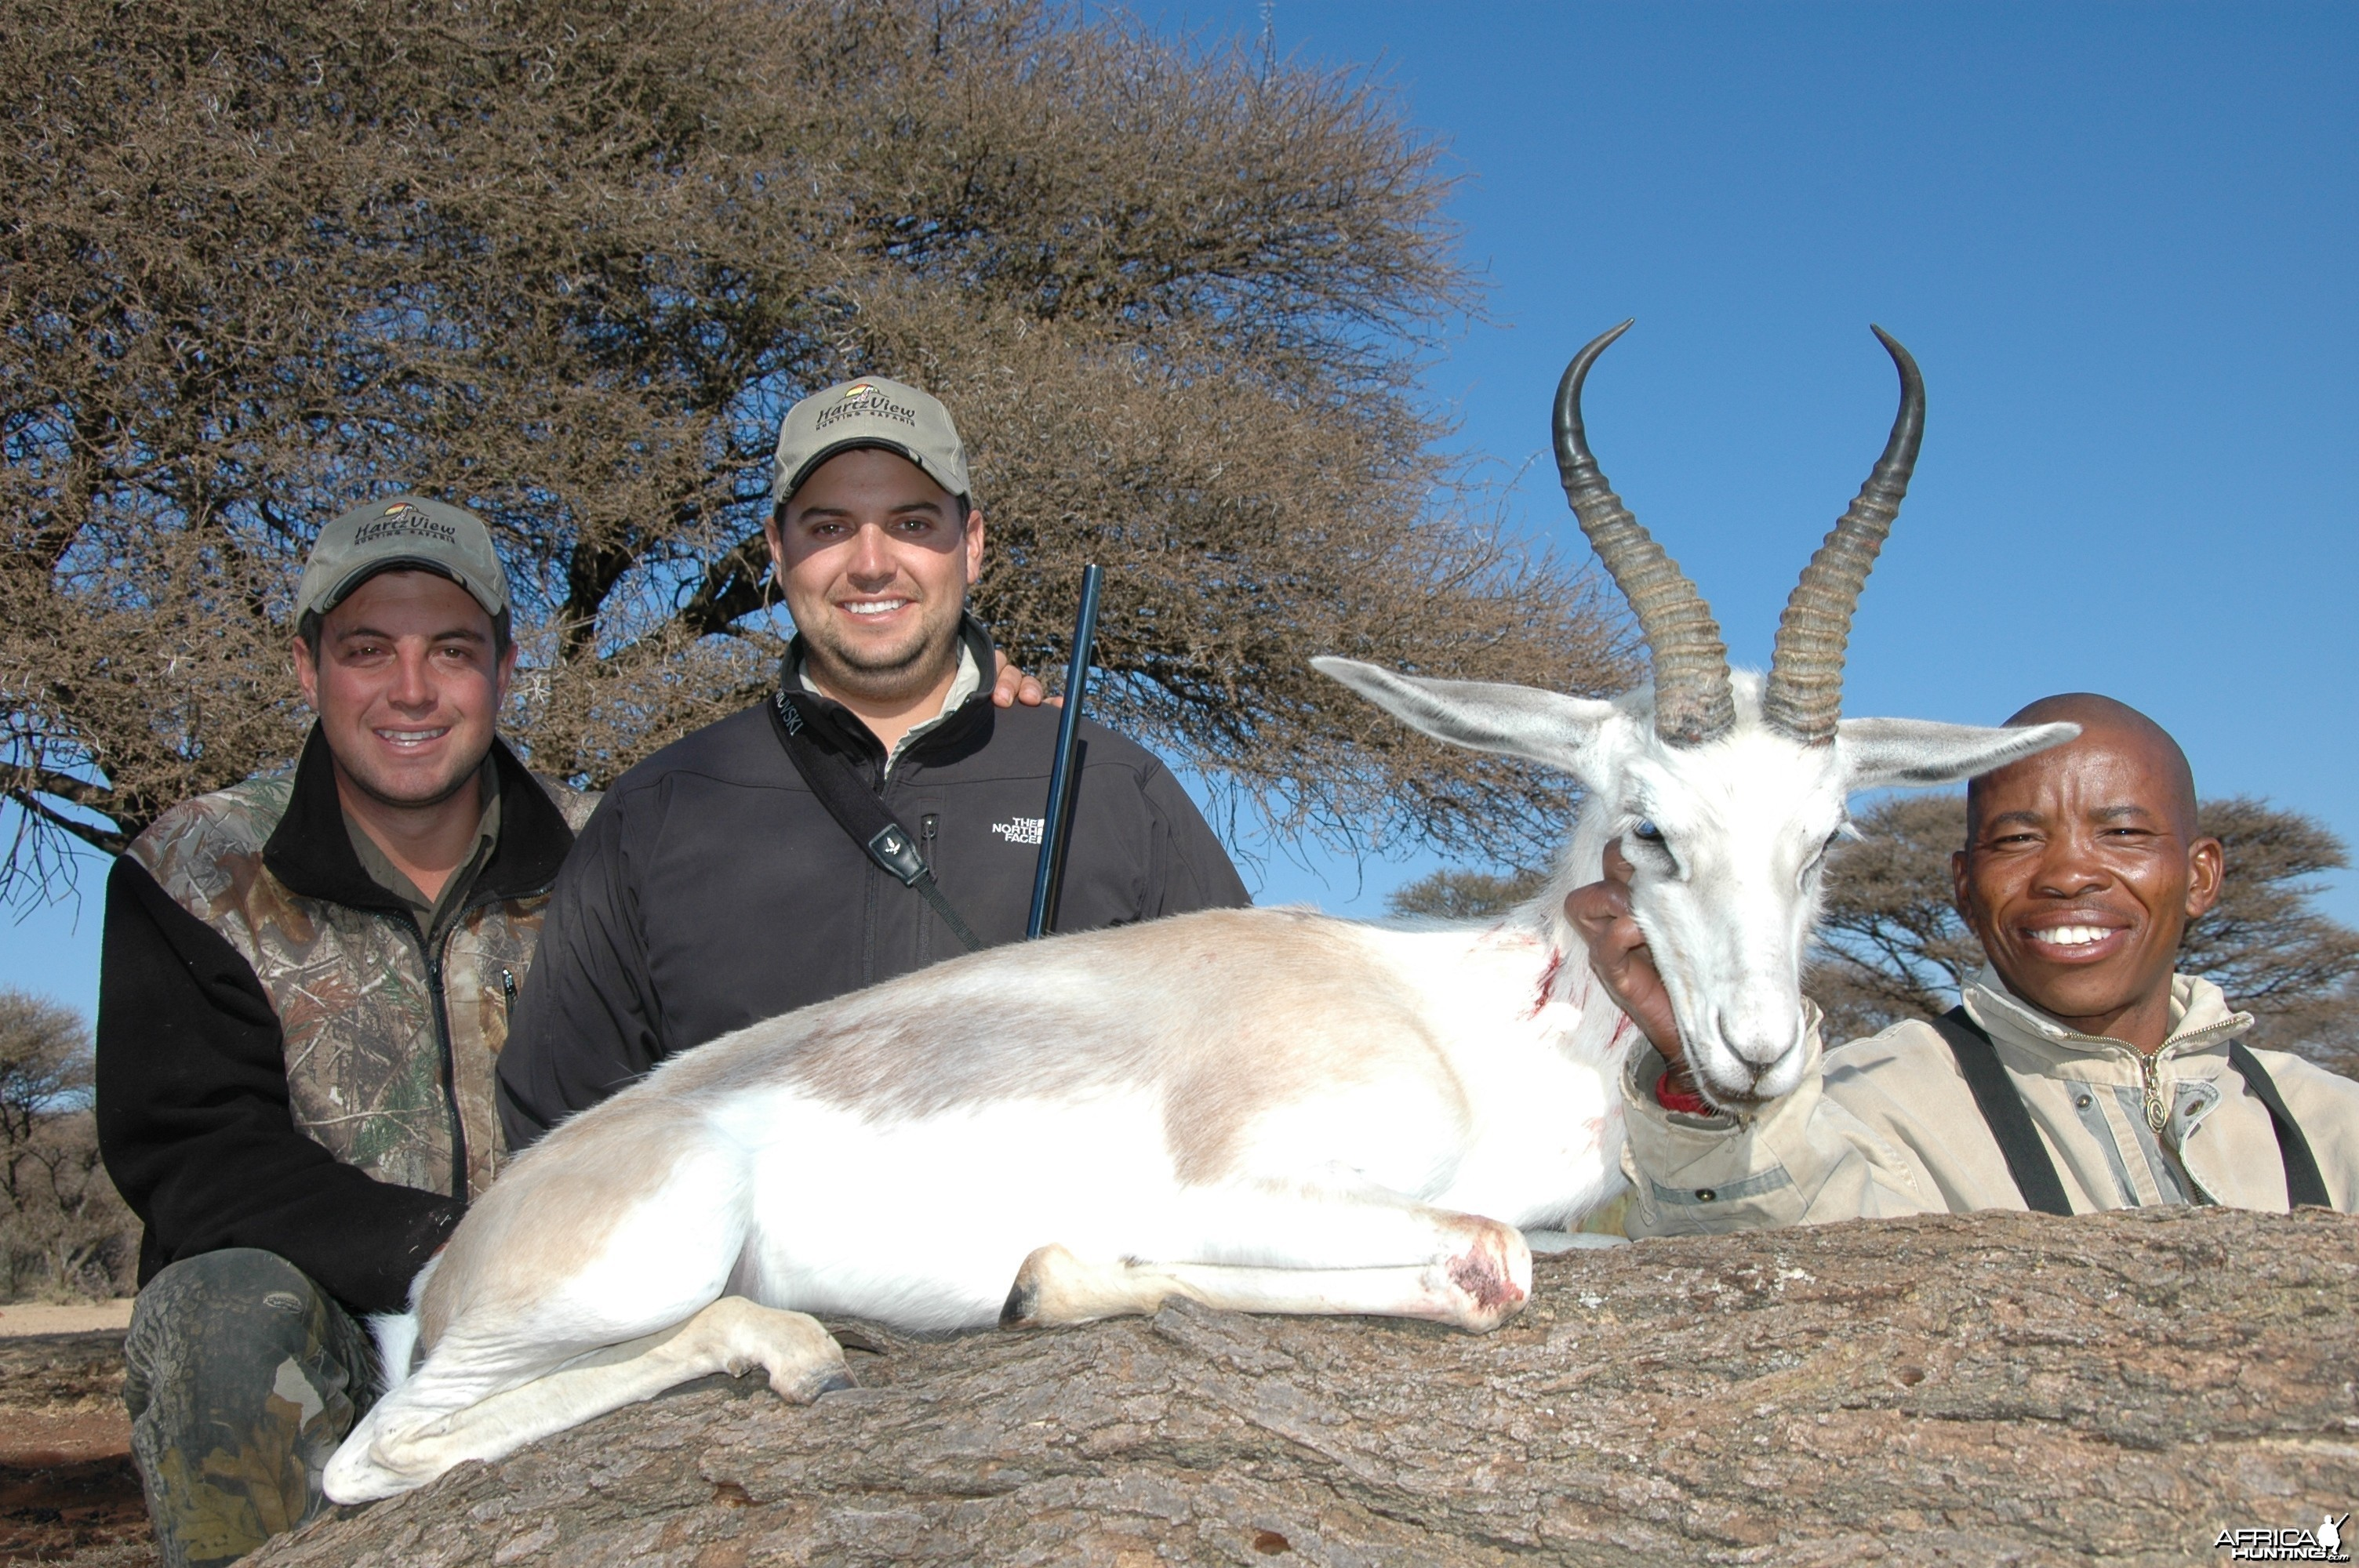 White Springbok hunted with Hartzview Hunting Safaris